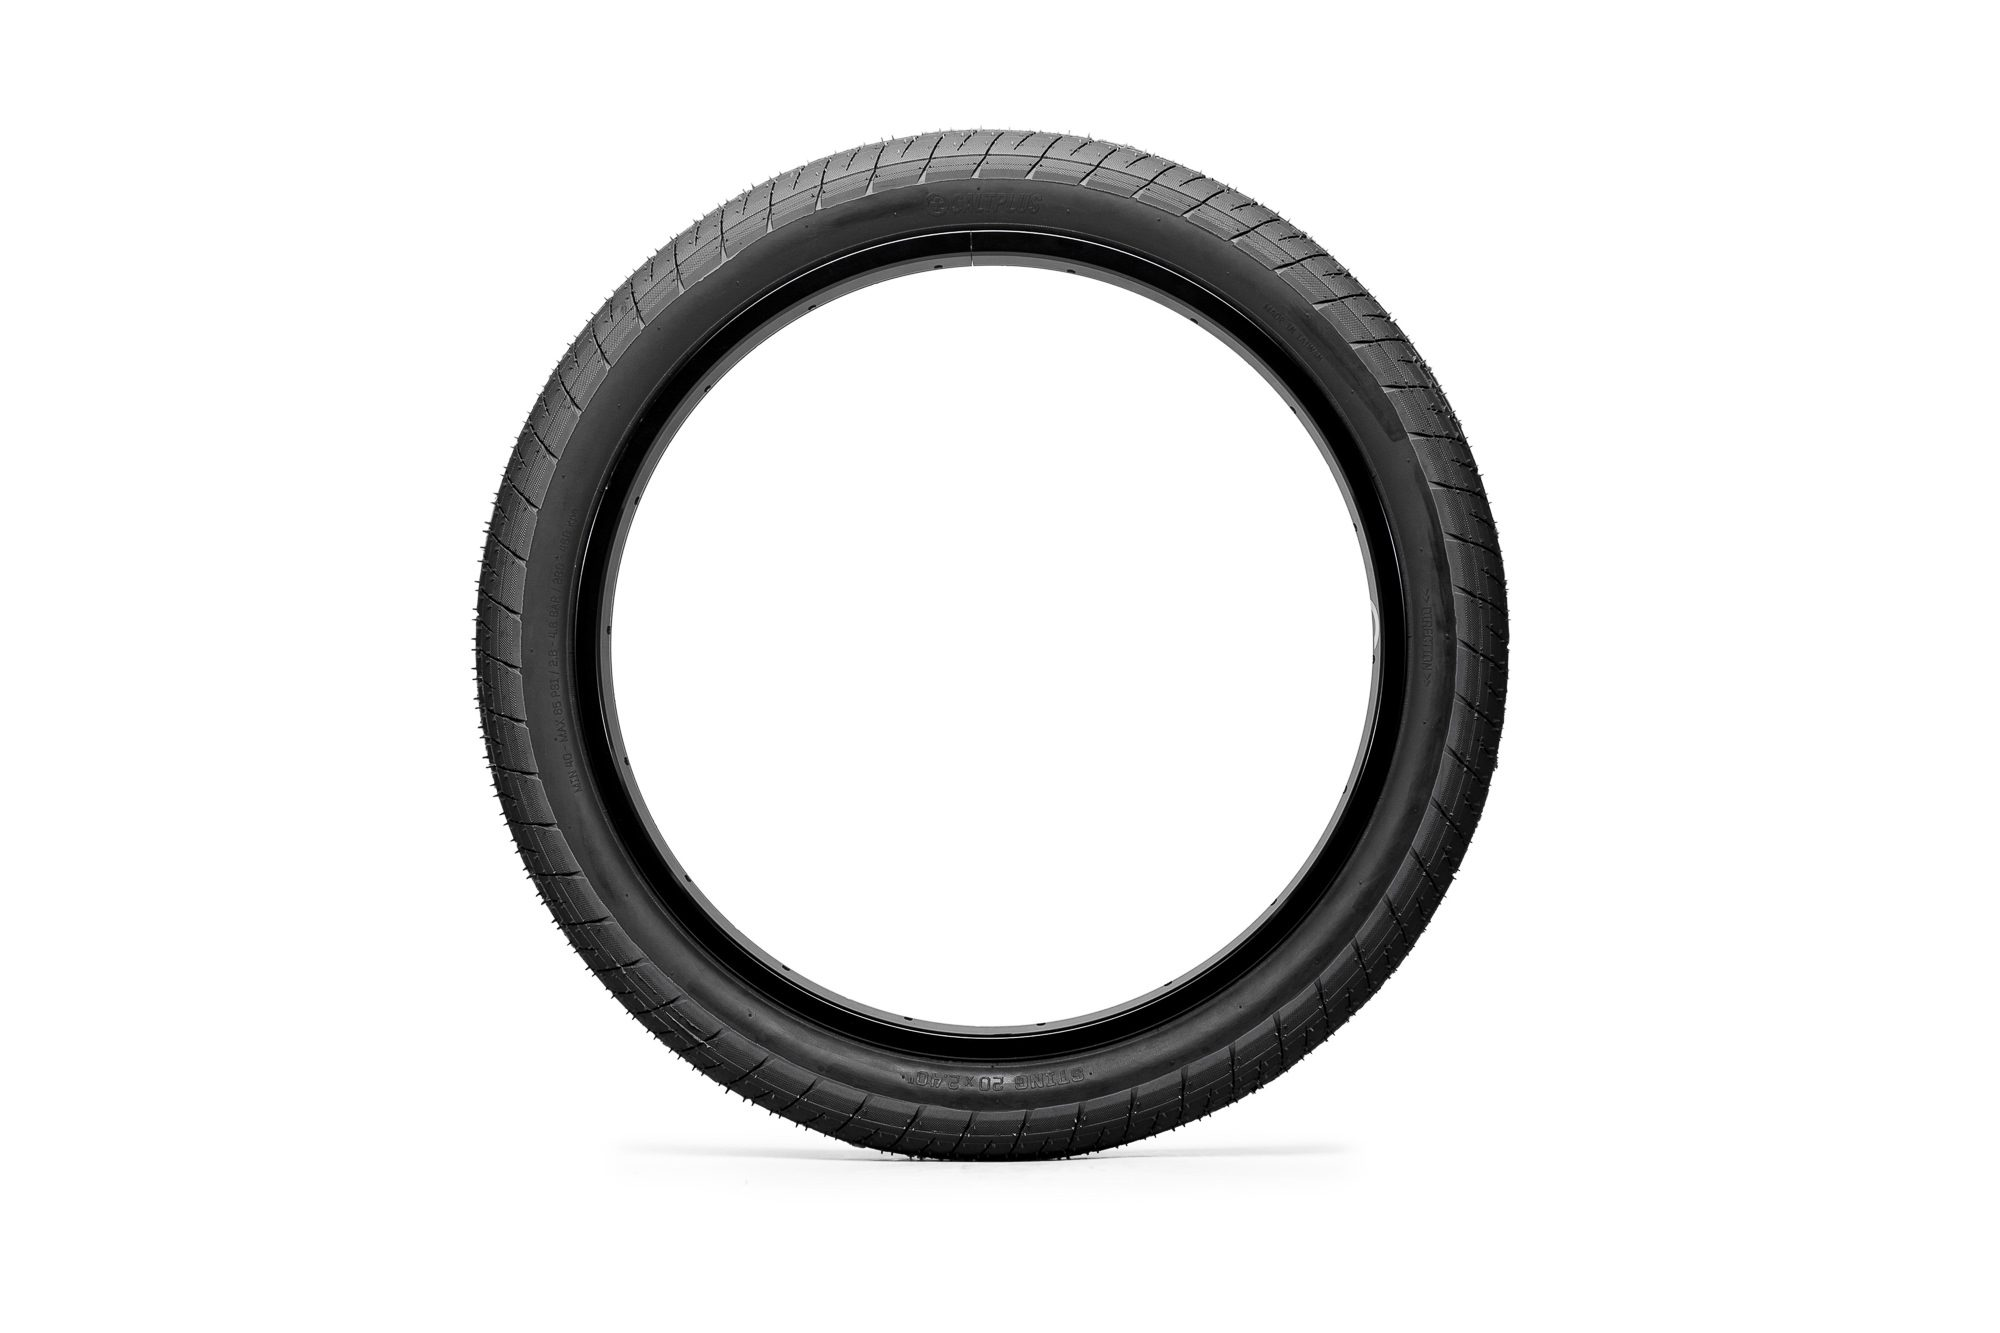 SaltPlus_Sting_tire_black_03